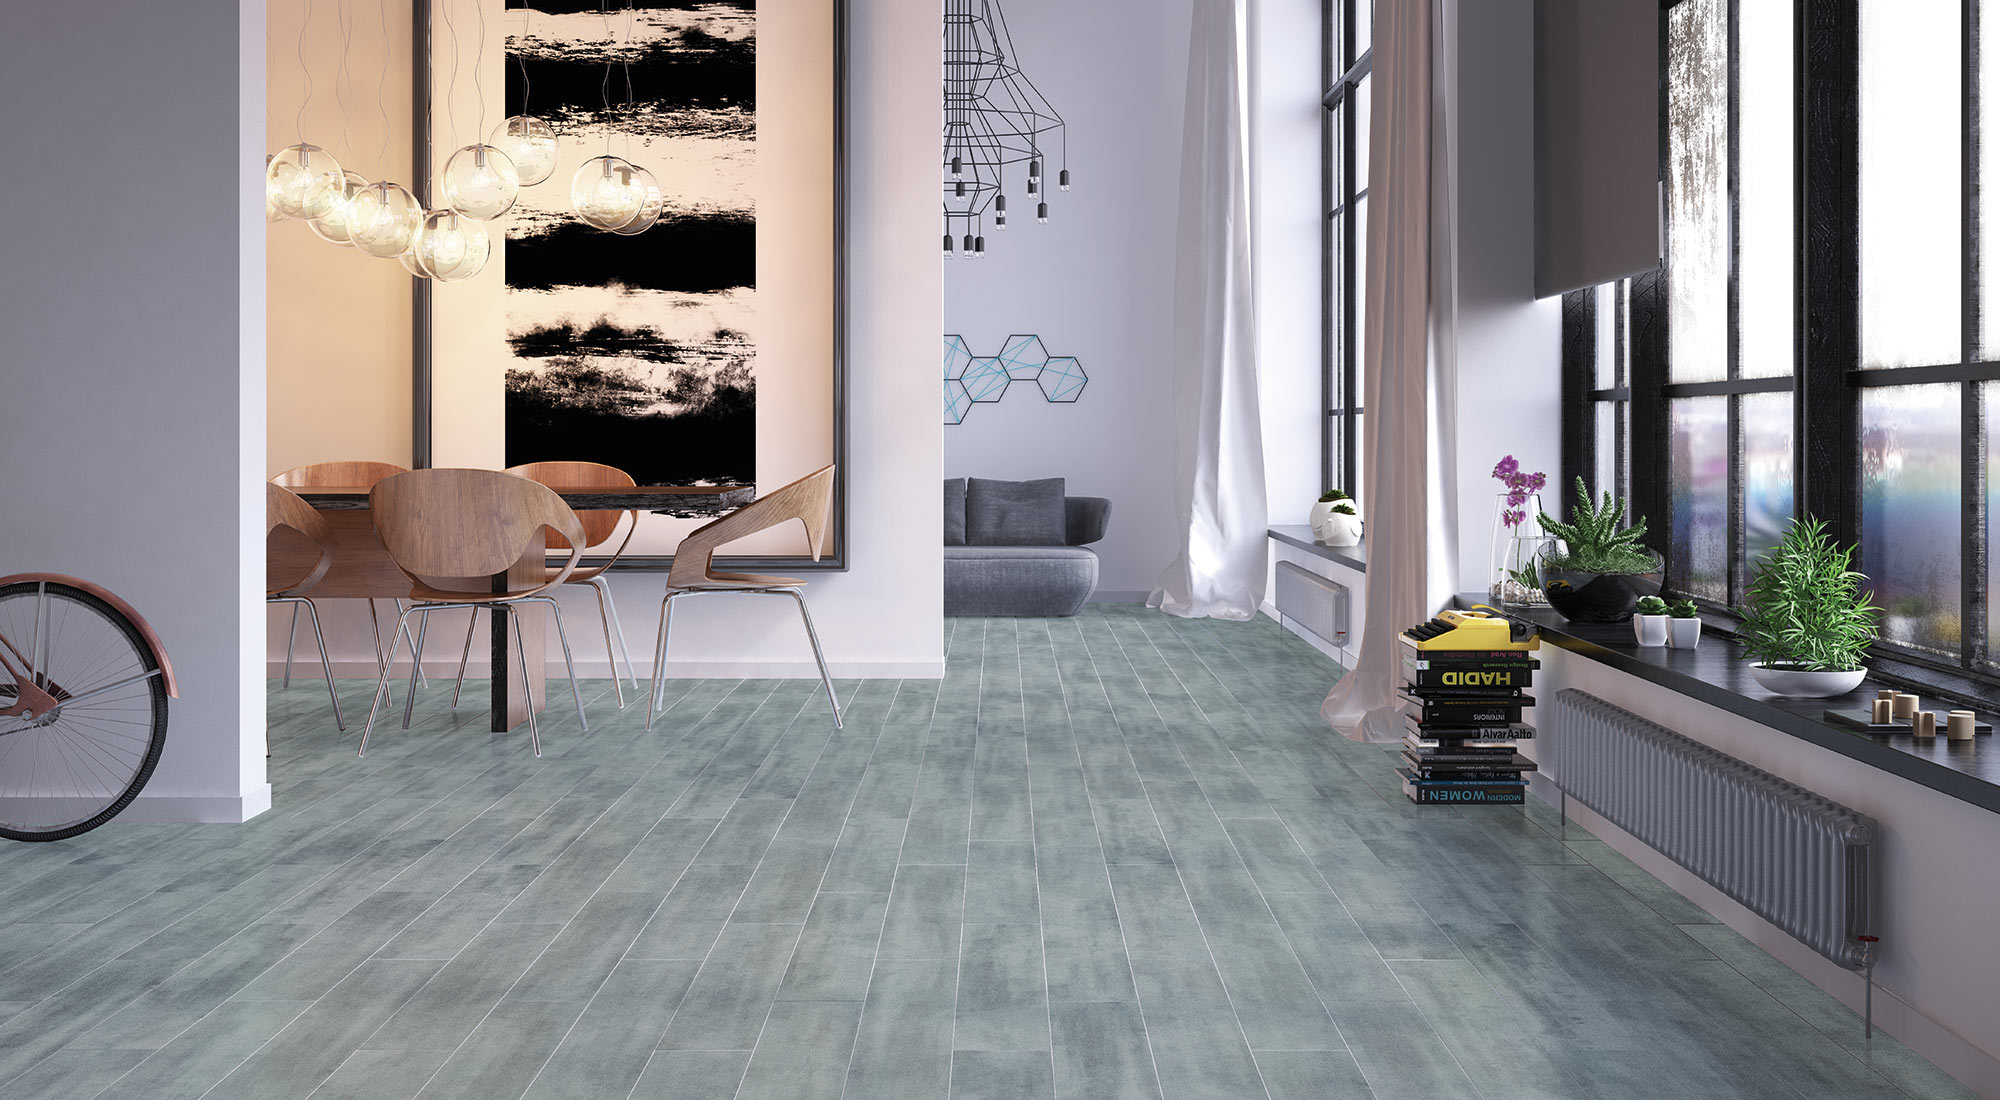 A mixture of wood, concrete and natural stone united in a porcelain stoneware floor tile